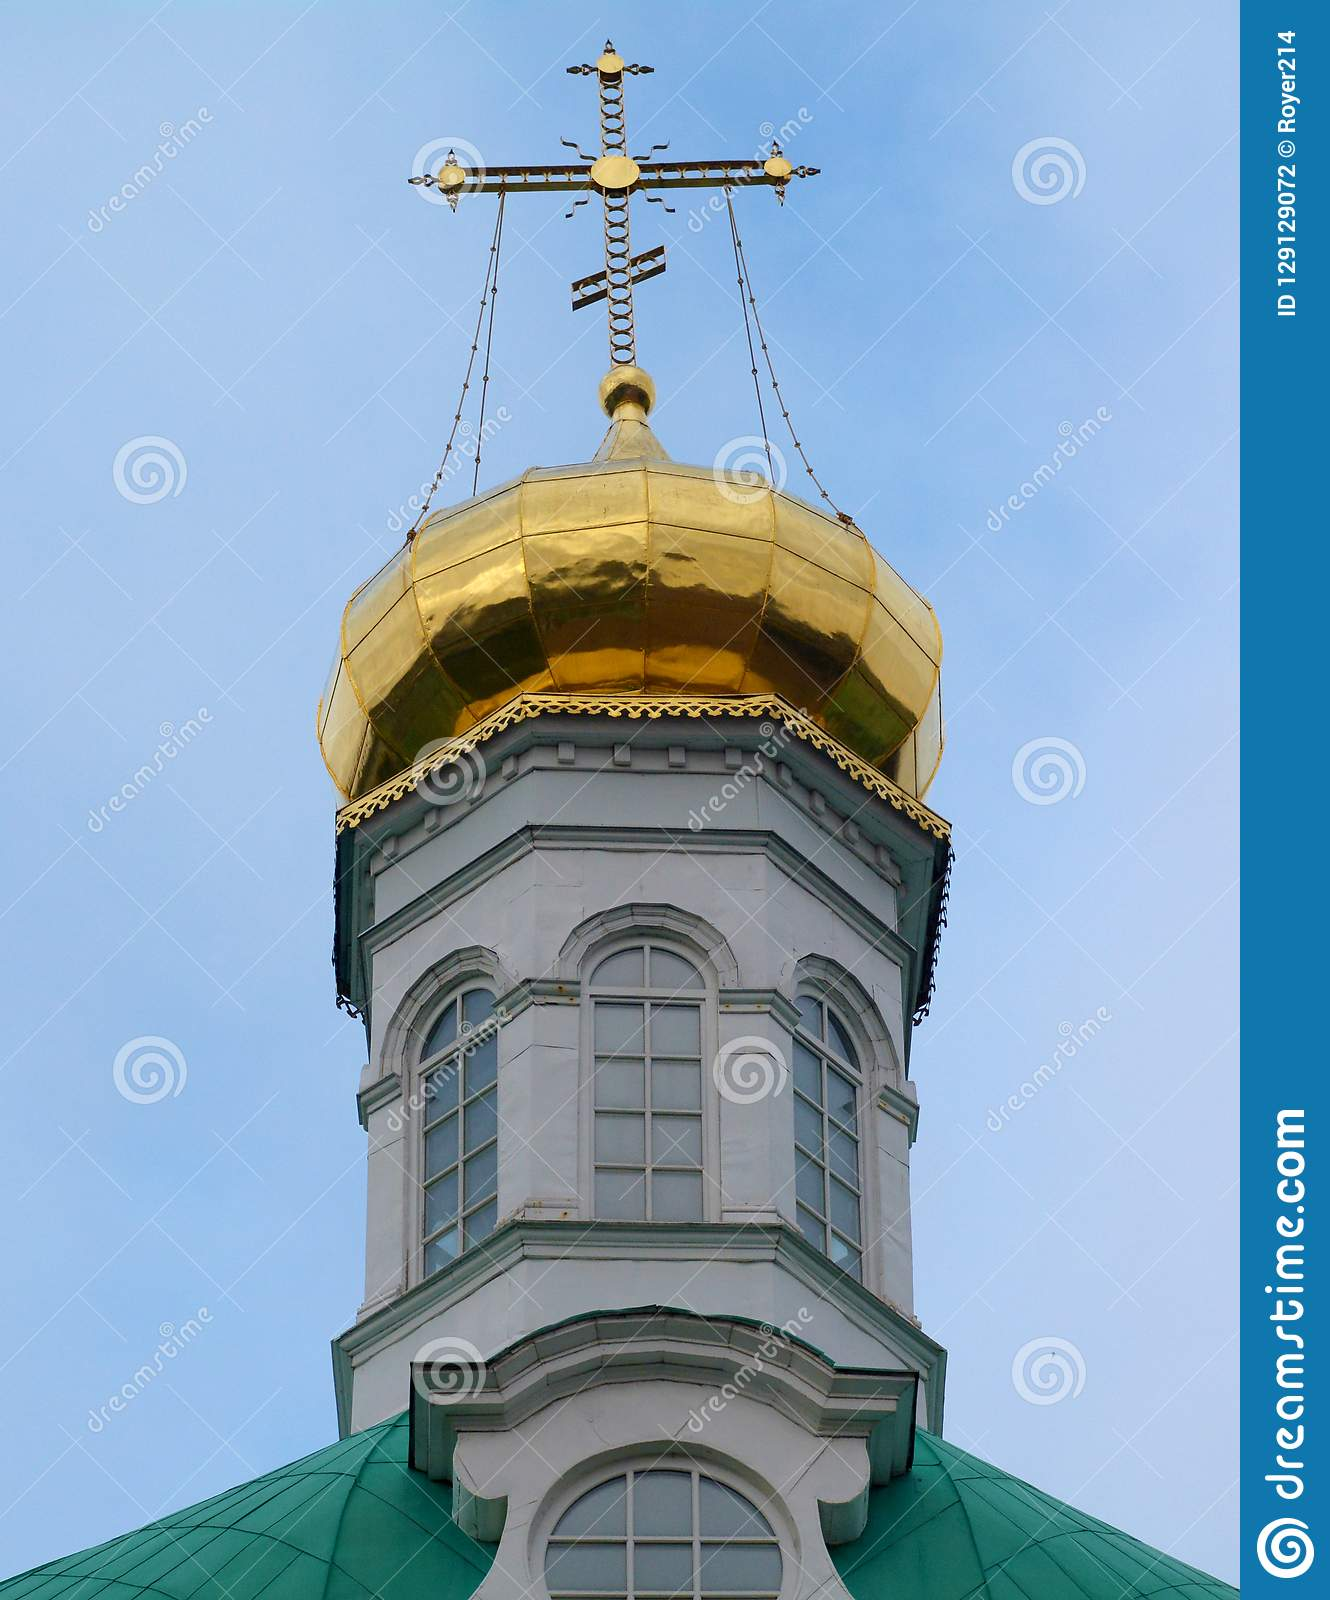 Dome of the Church at Trinity-St. Sergius Lavra in Sergiev